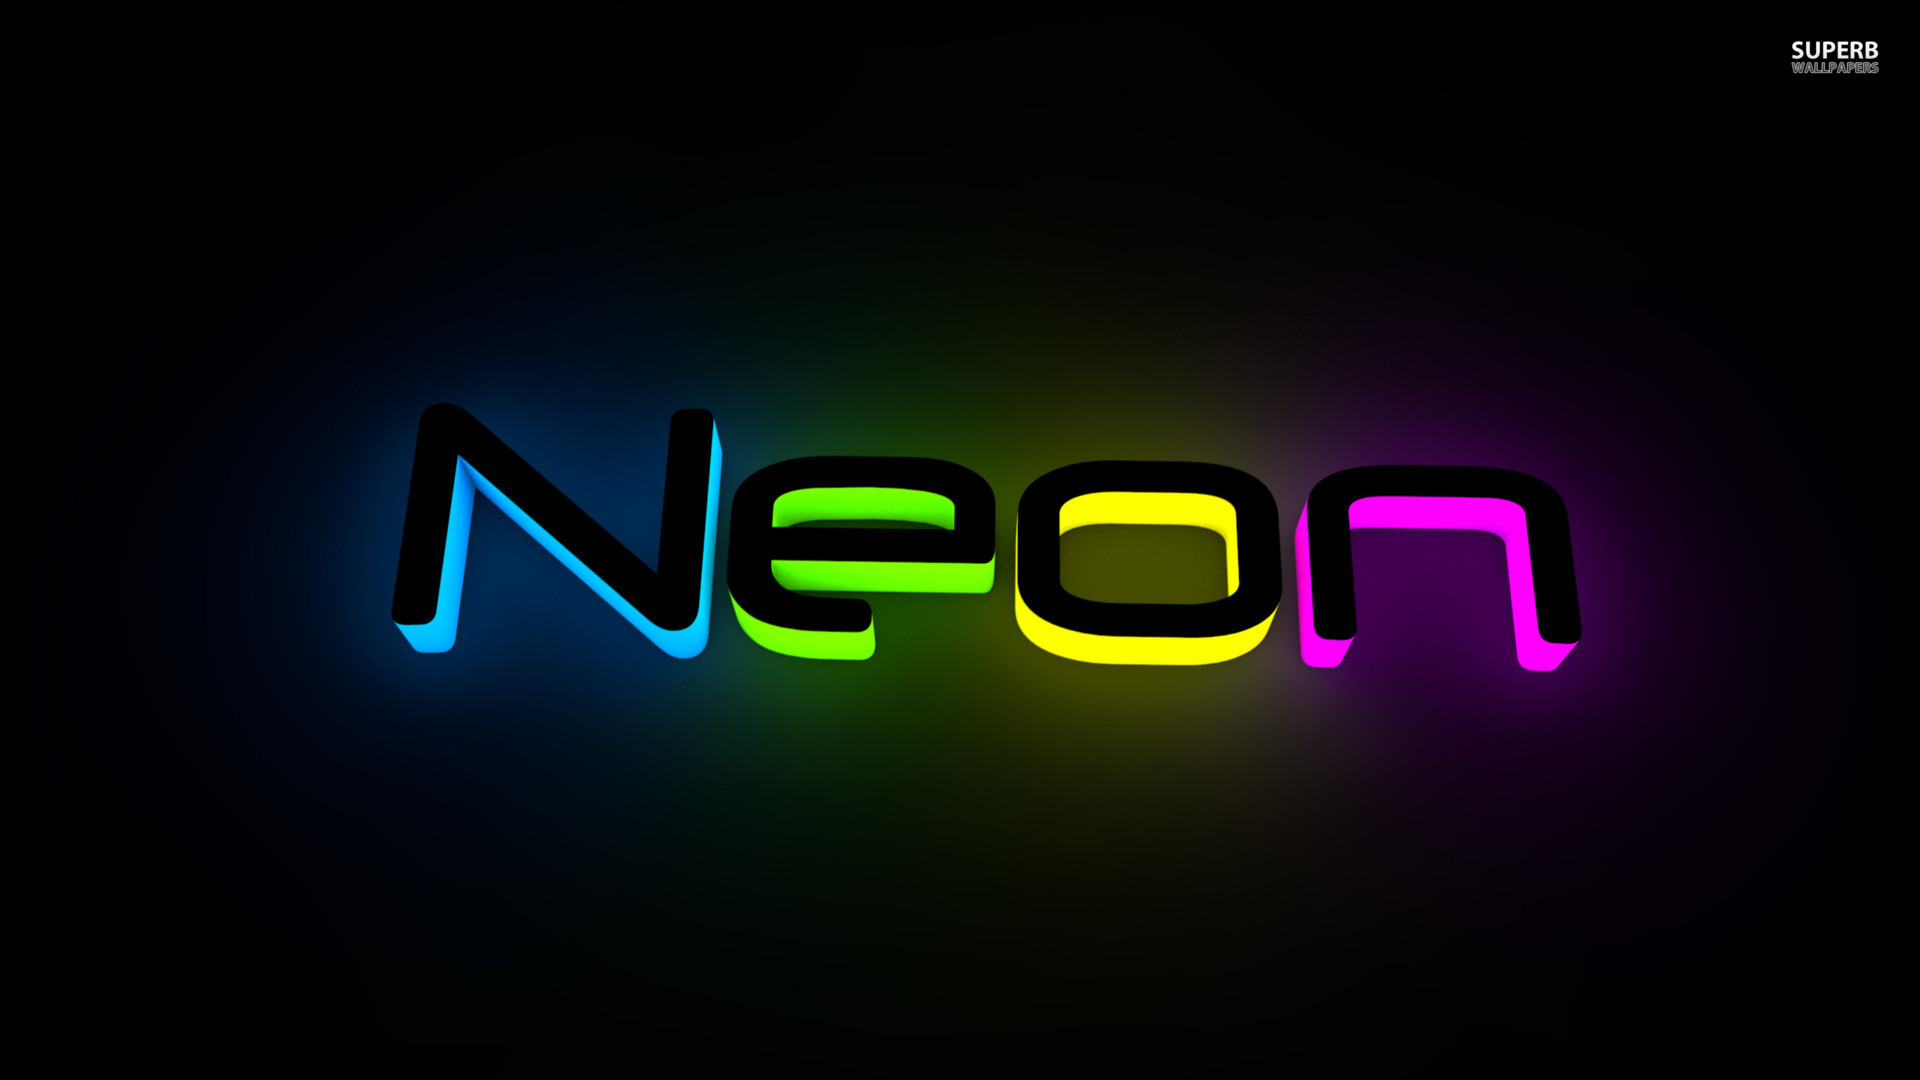 Neon Signs Wallpaper (52+ images)